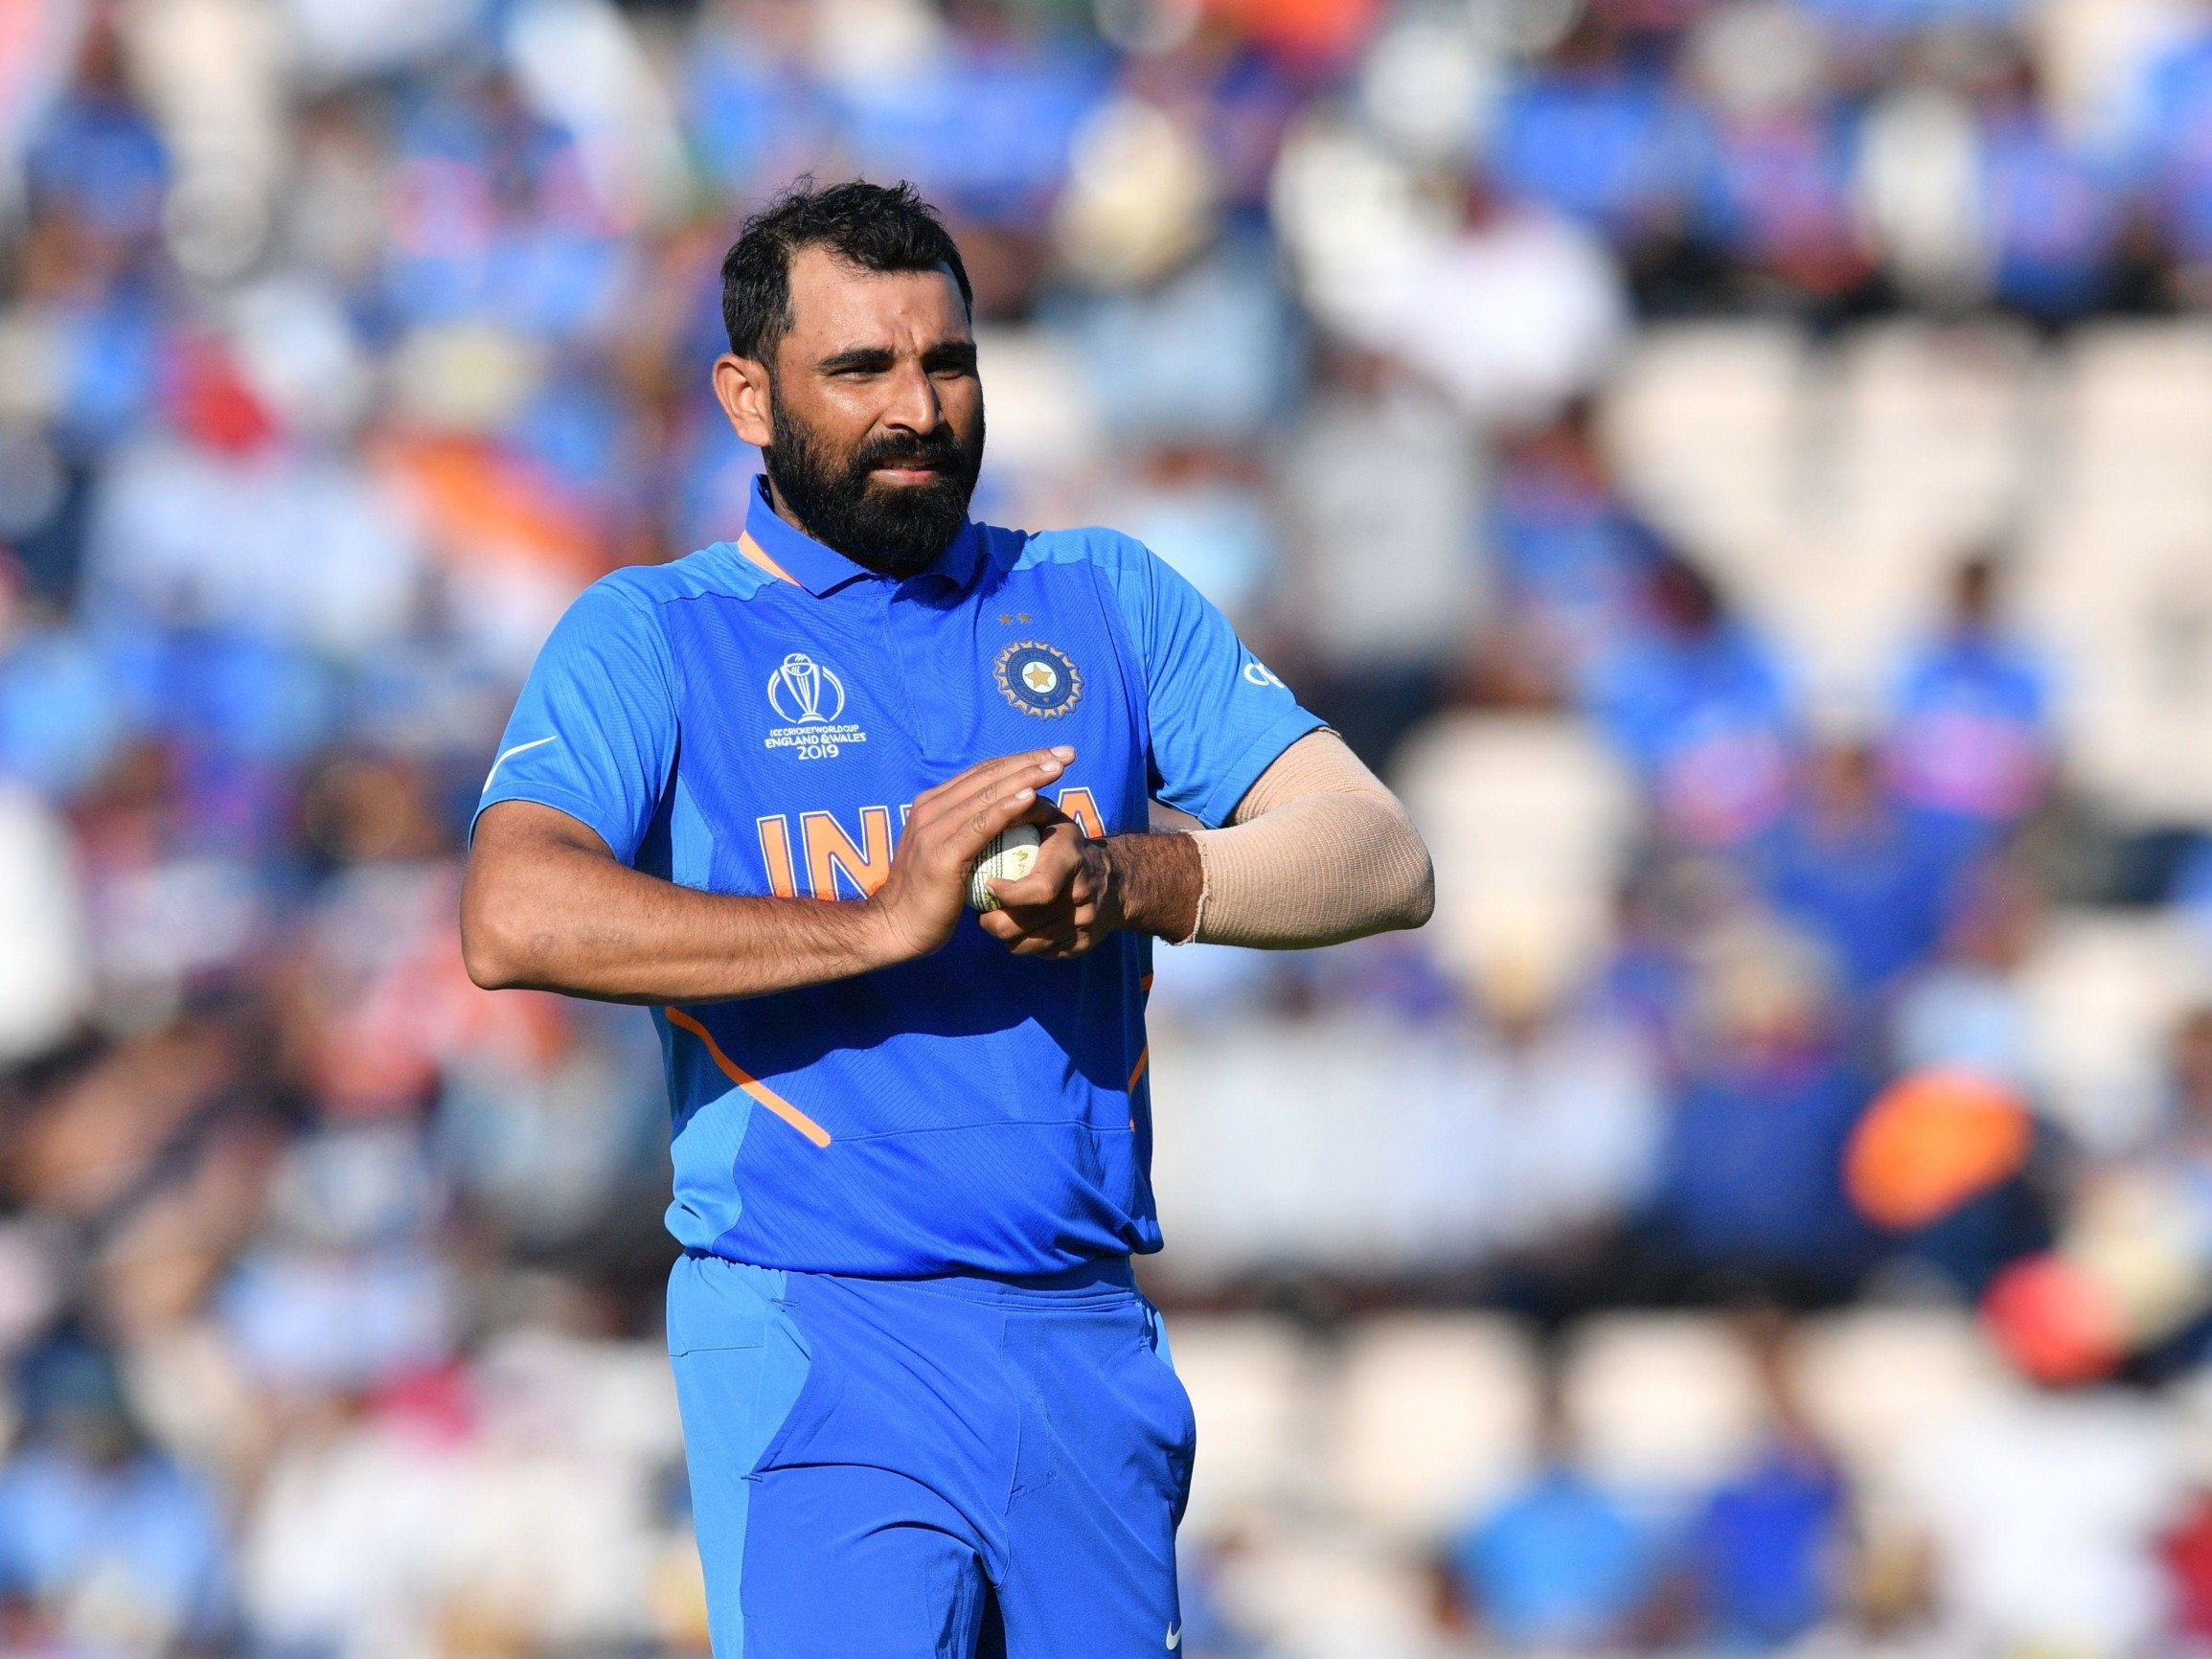 ICC Cricket World Cup 2019: India eye an easy win against Sri Lanka before the semi-final